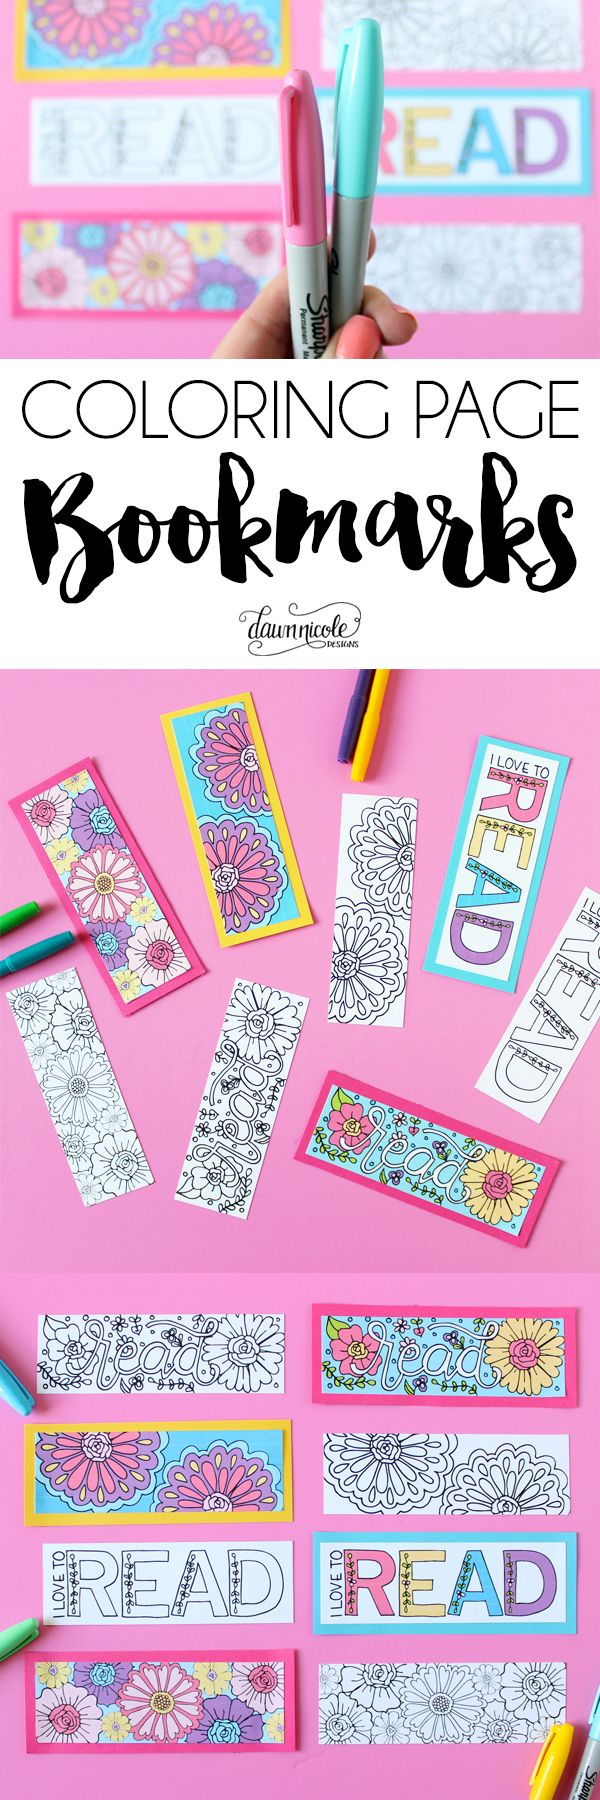 749 best Coloring Pages images on Pinterest Coloring pages